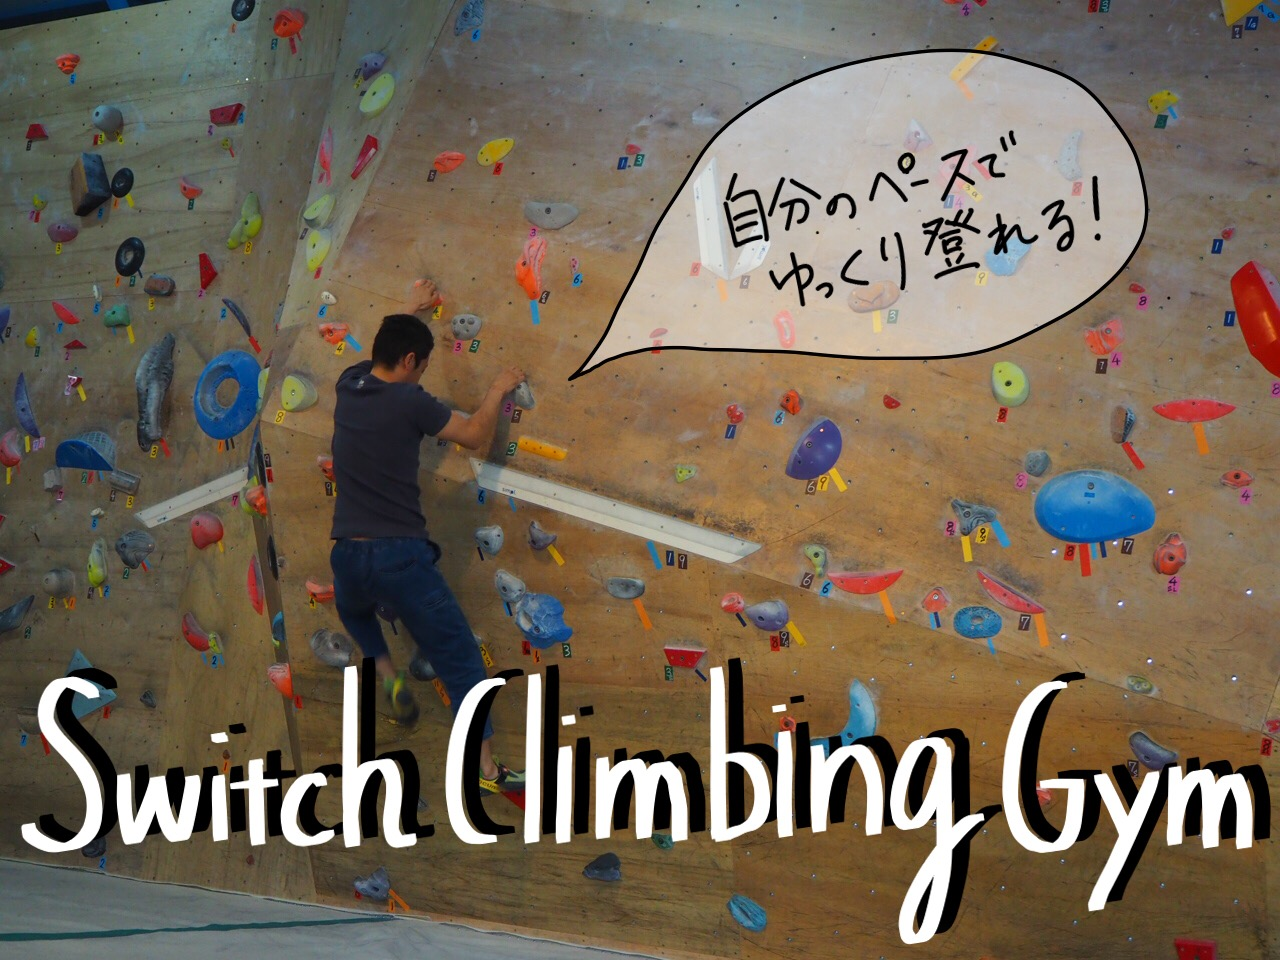 Switch climbing gym